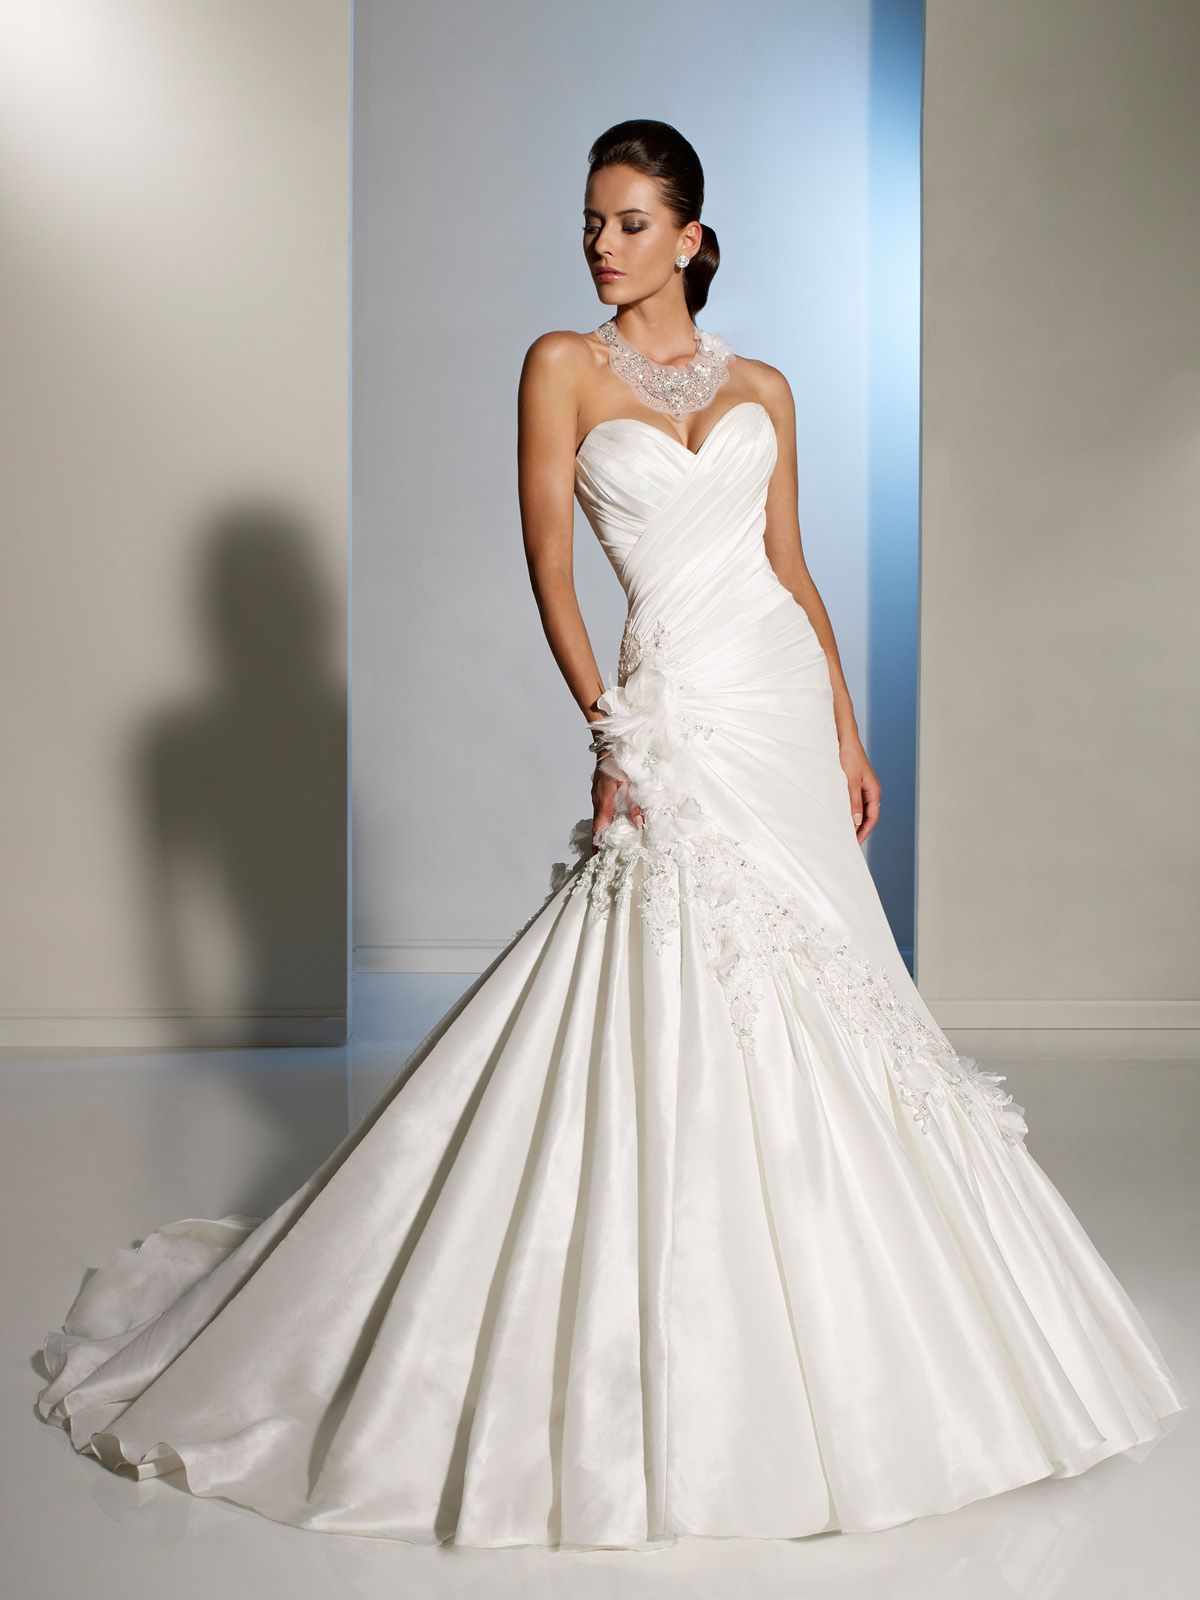 Eye catching design that compliments the figure | A-line Wedding ...